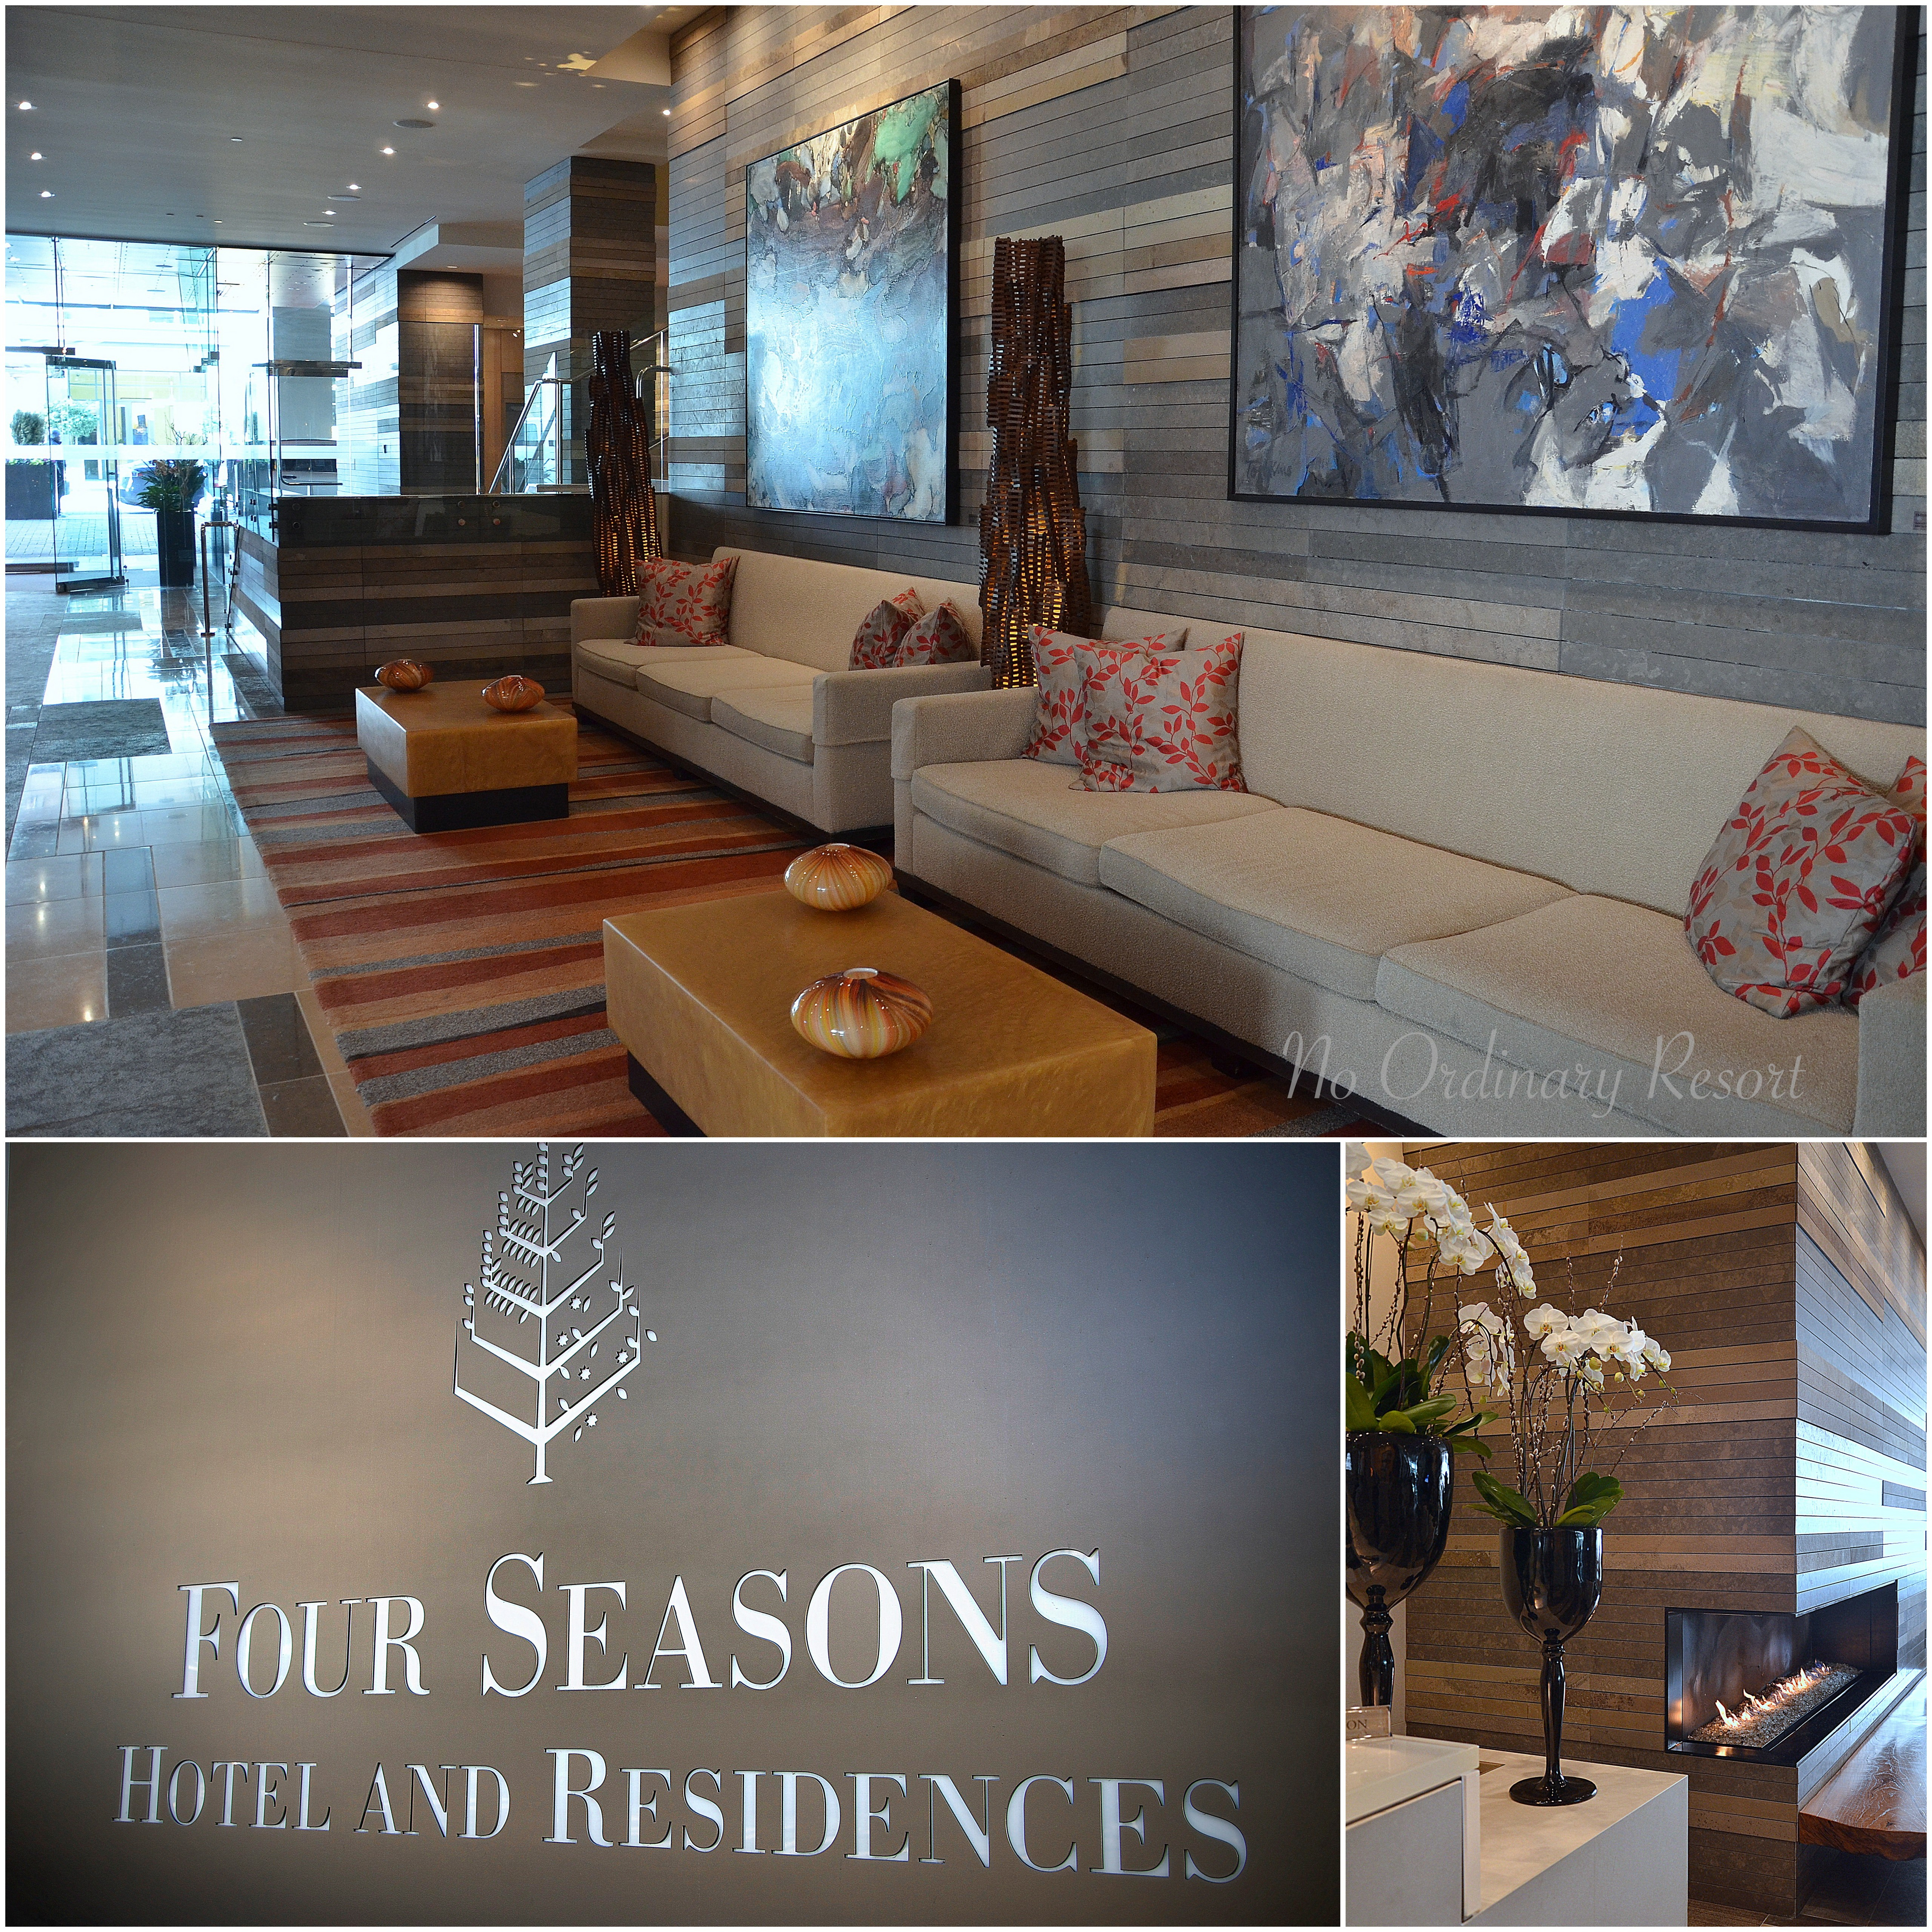 Four Seasons Seattle – No Ordinary Resort